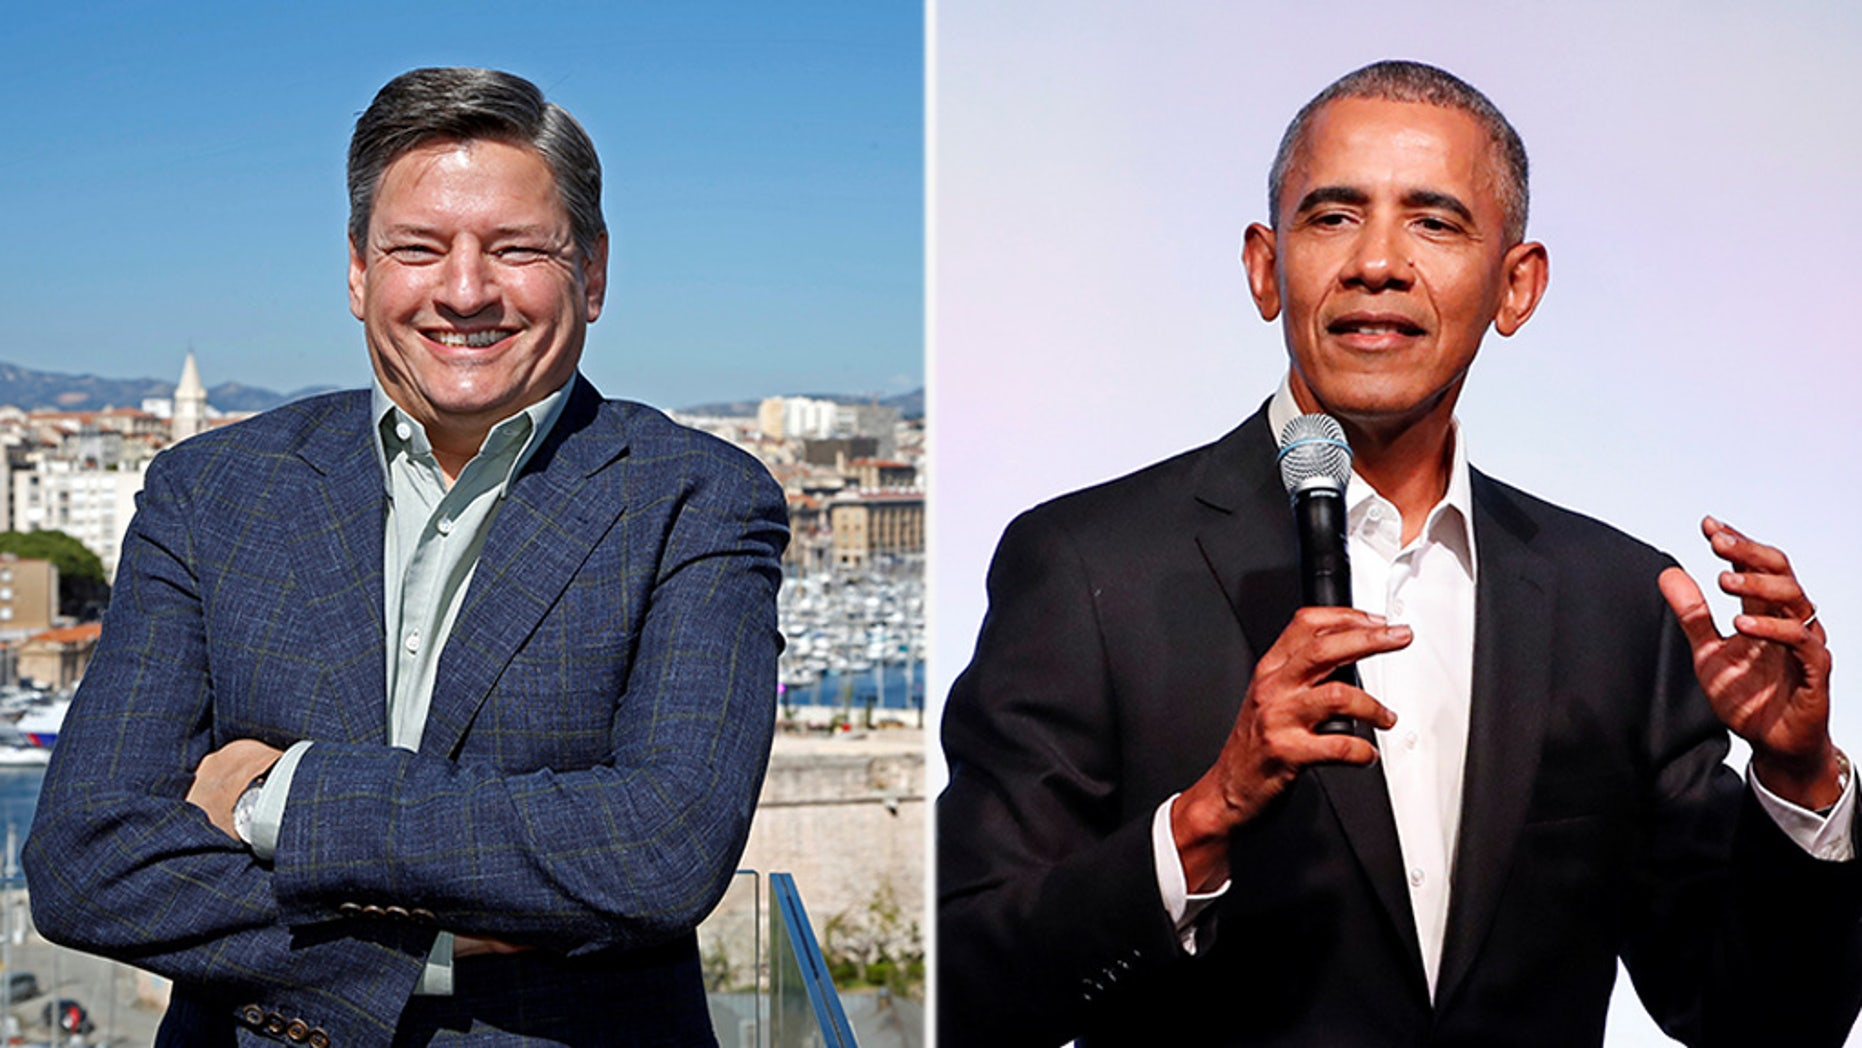 Netflix chief content officer Ted Sarandos (left), an Obama bundler, helped broker the deal to bring the Obamas to Netflix.